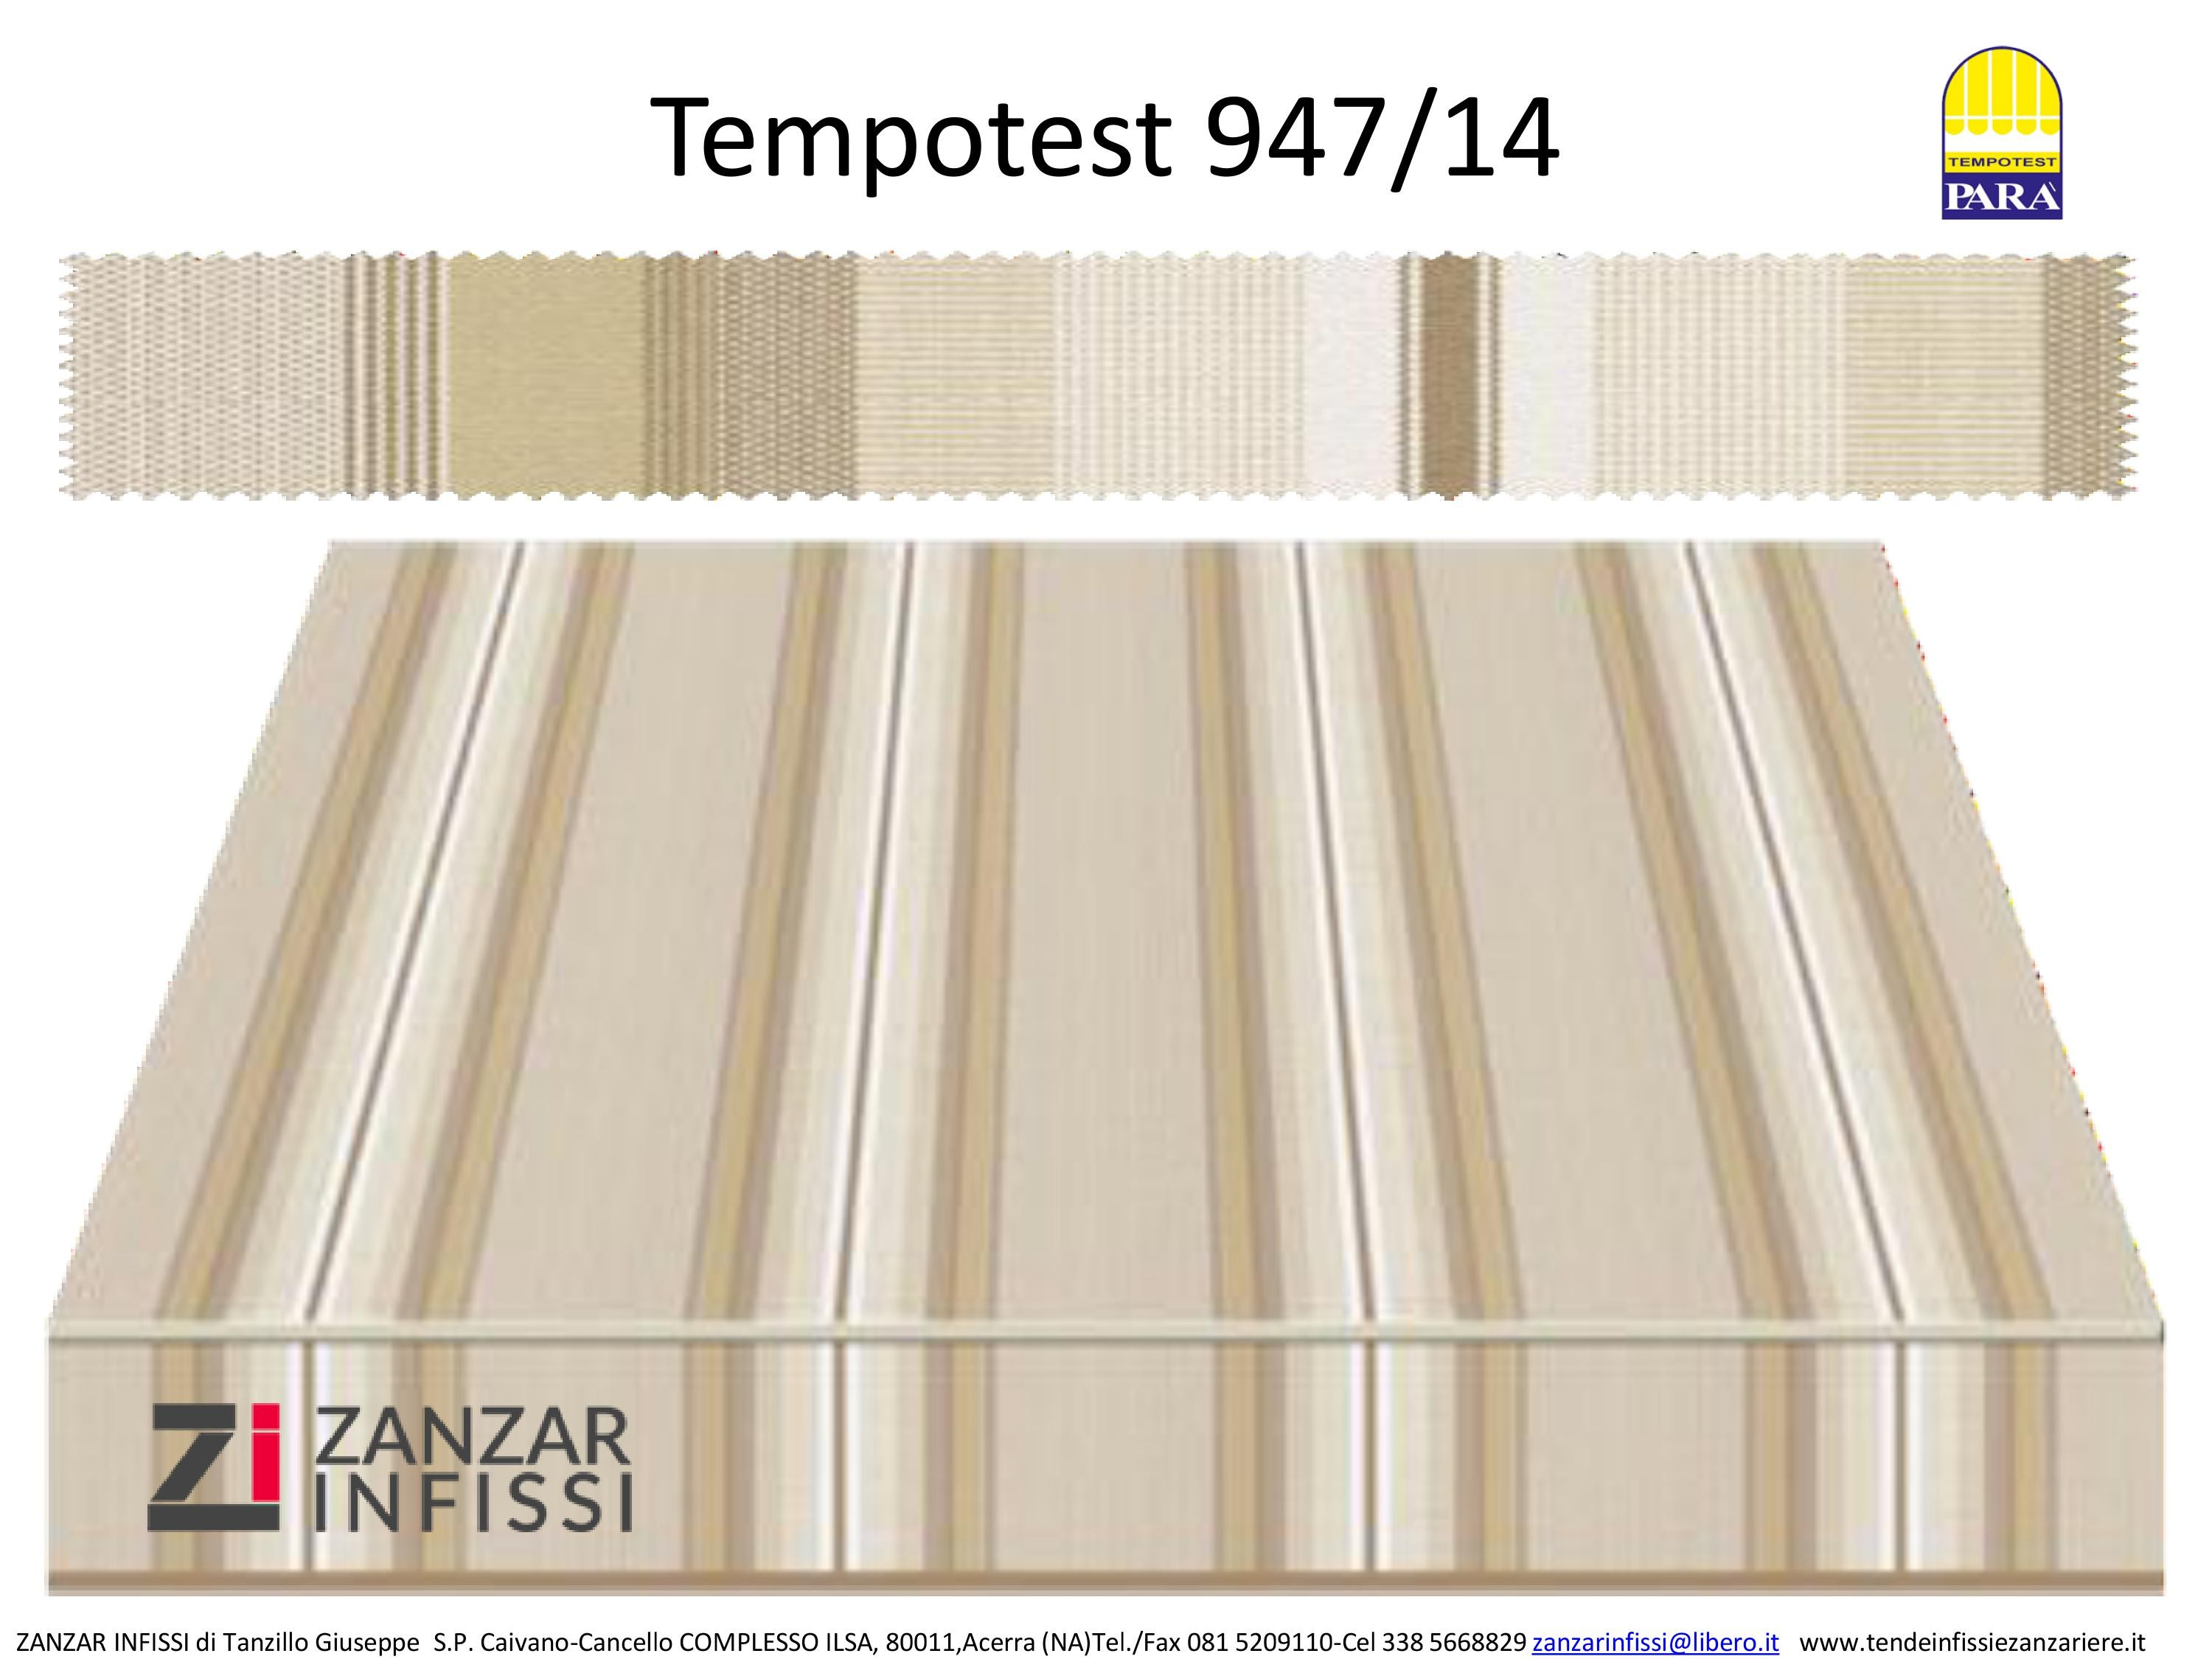 Tempotest 947/14